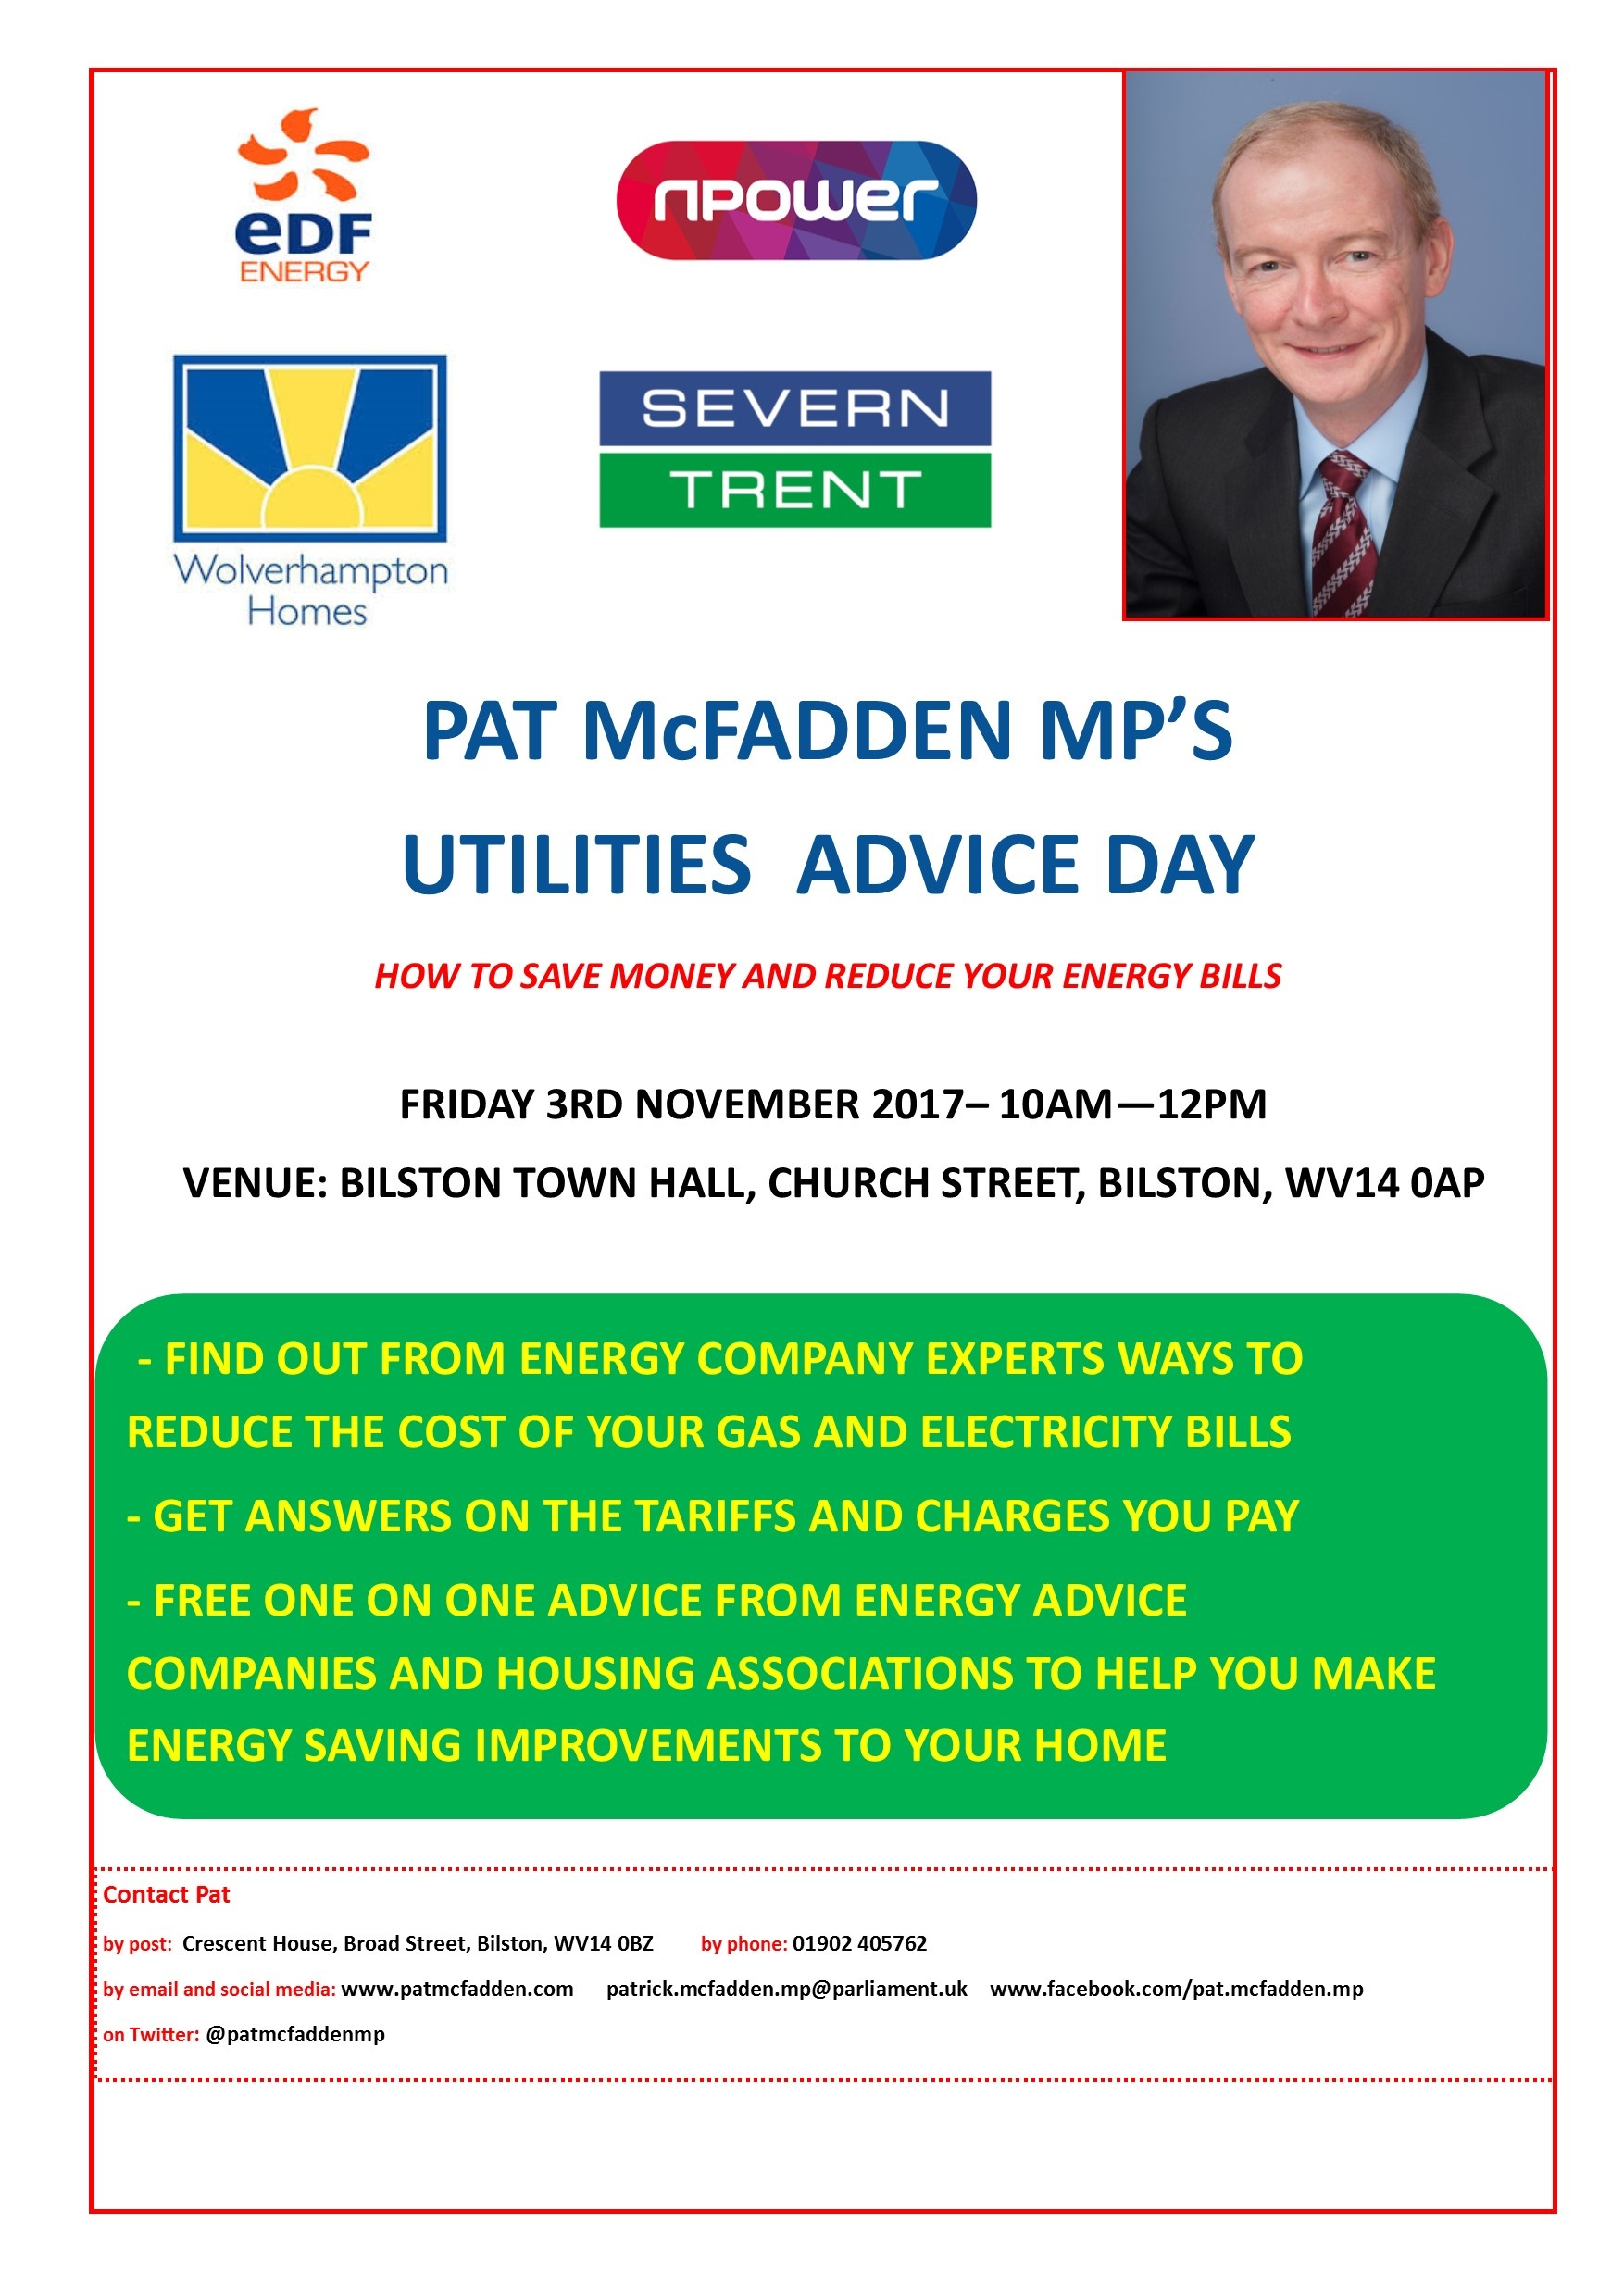 new_Utilities_Advice_Day_colour_poster_2017_NEWEST_(002).jpg